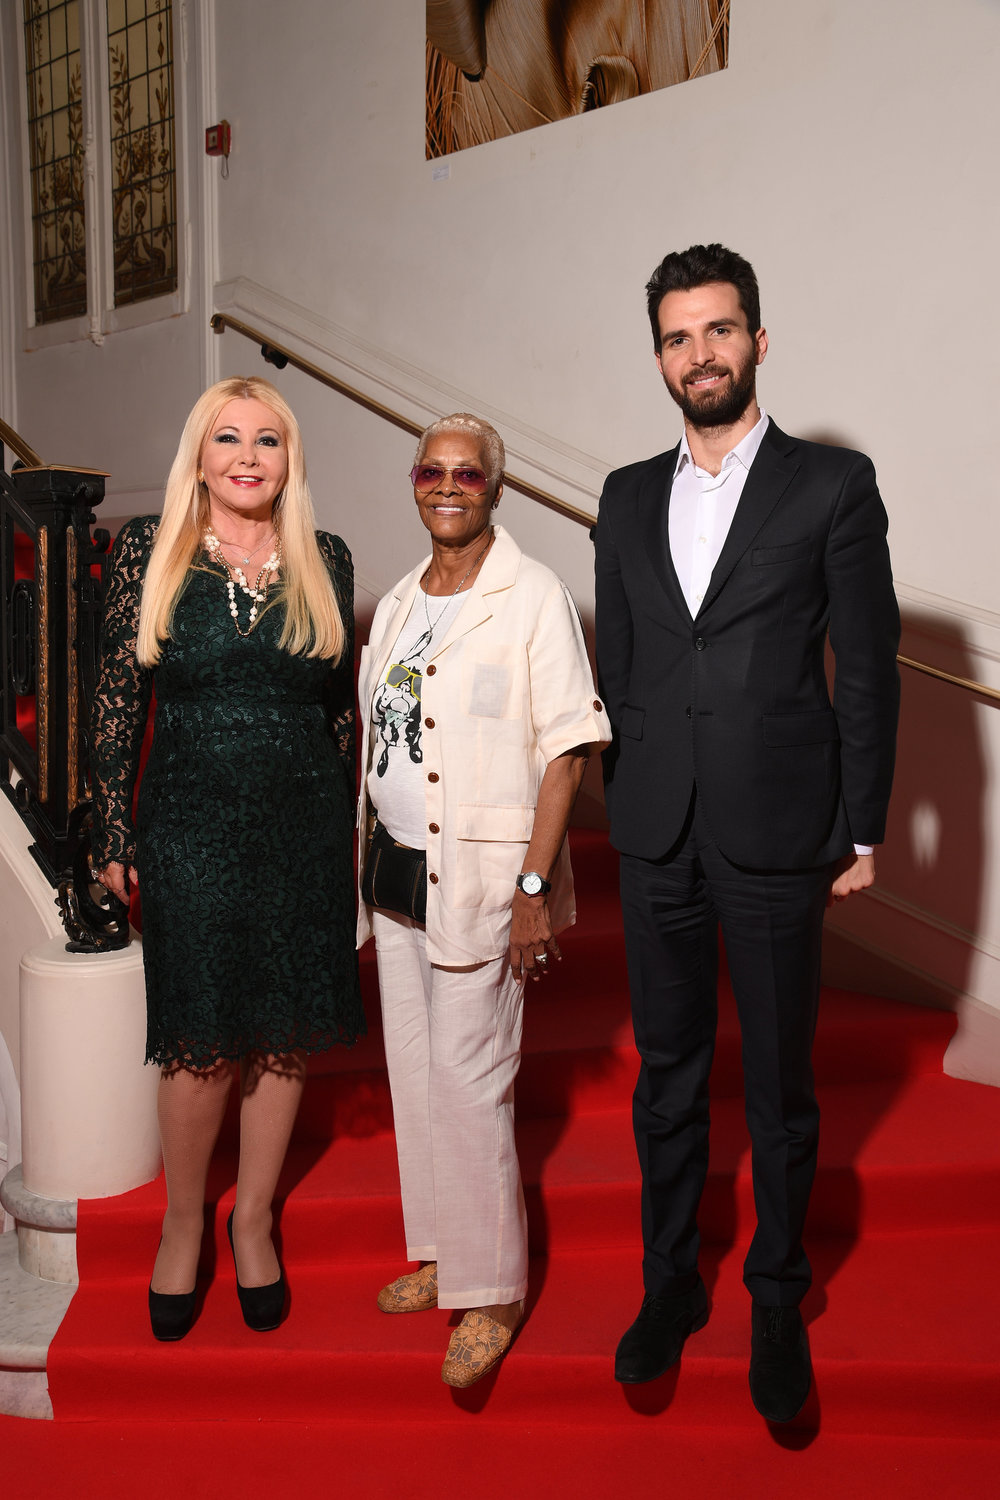 Dionne Warwick with AMBI Group At The 69th Annual Cannes Film, Monika Bacardi & Andrea Iervolino